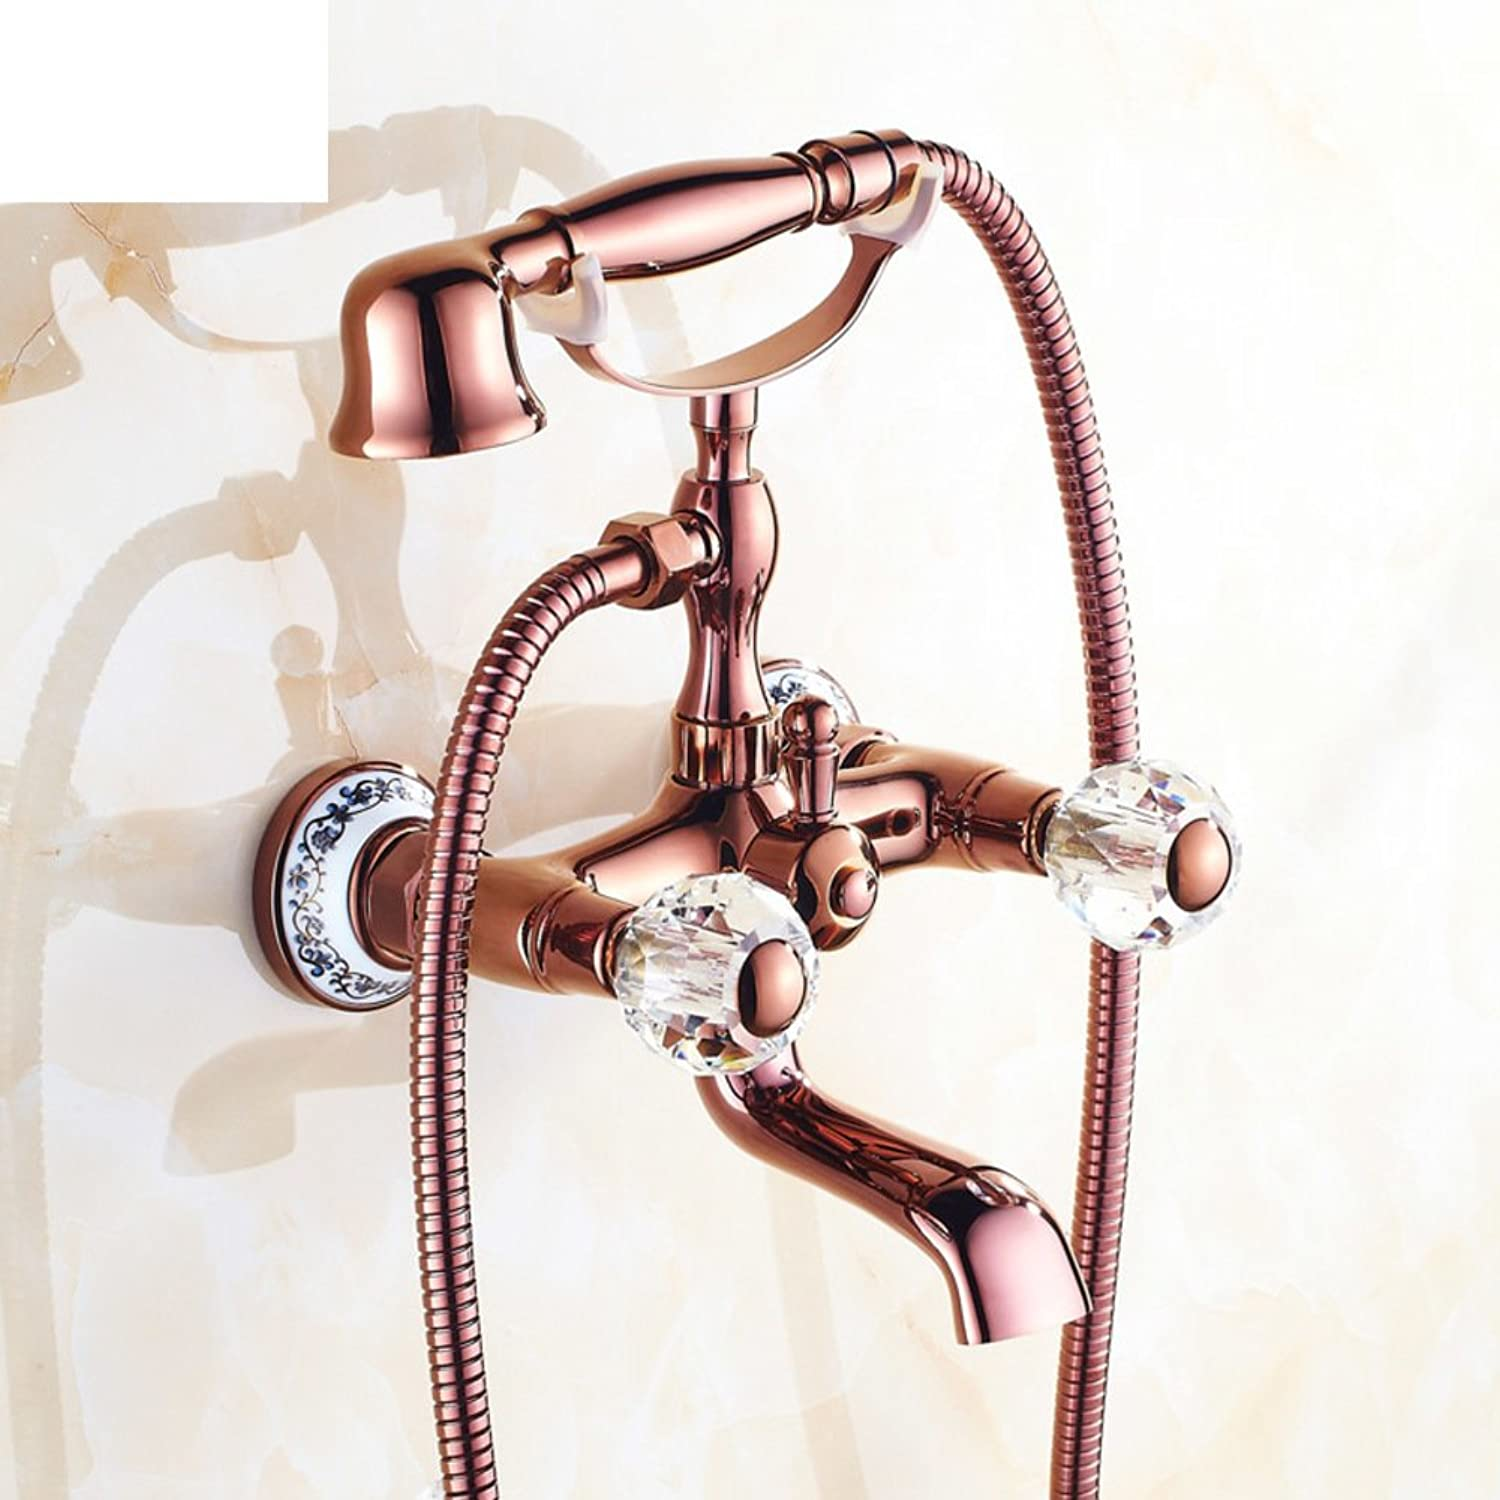 Copper Antique Bathtub Faucet European-Style Shower Kit Simple Shower Set Bathroom-J